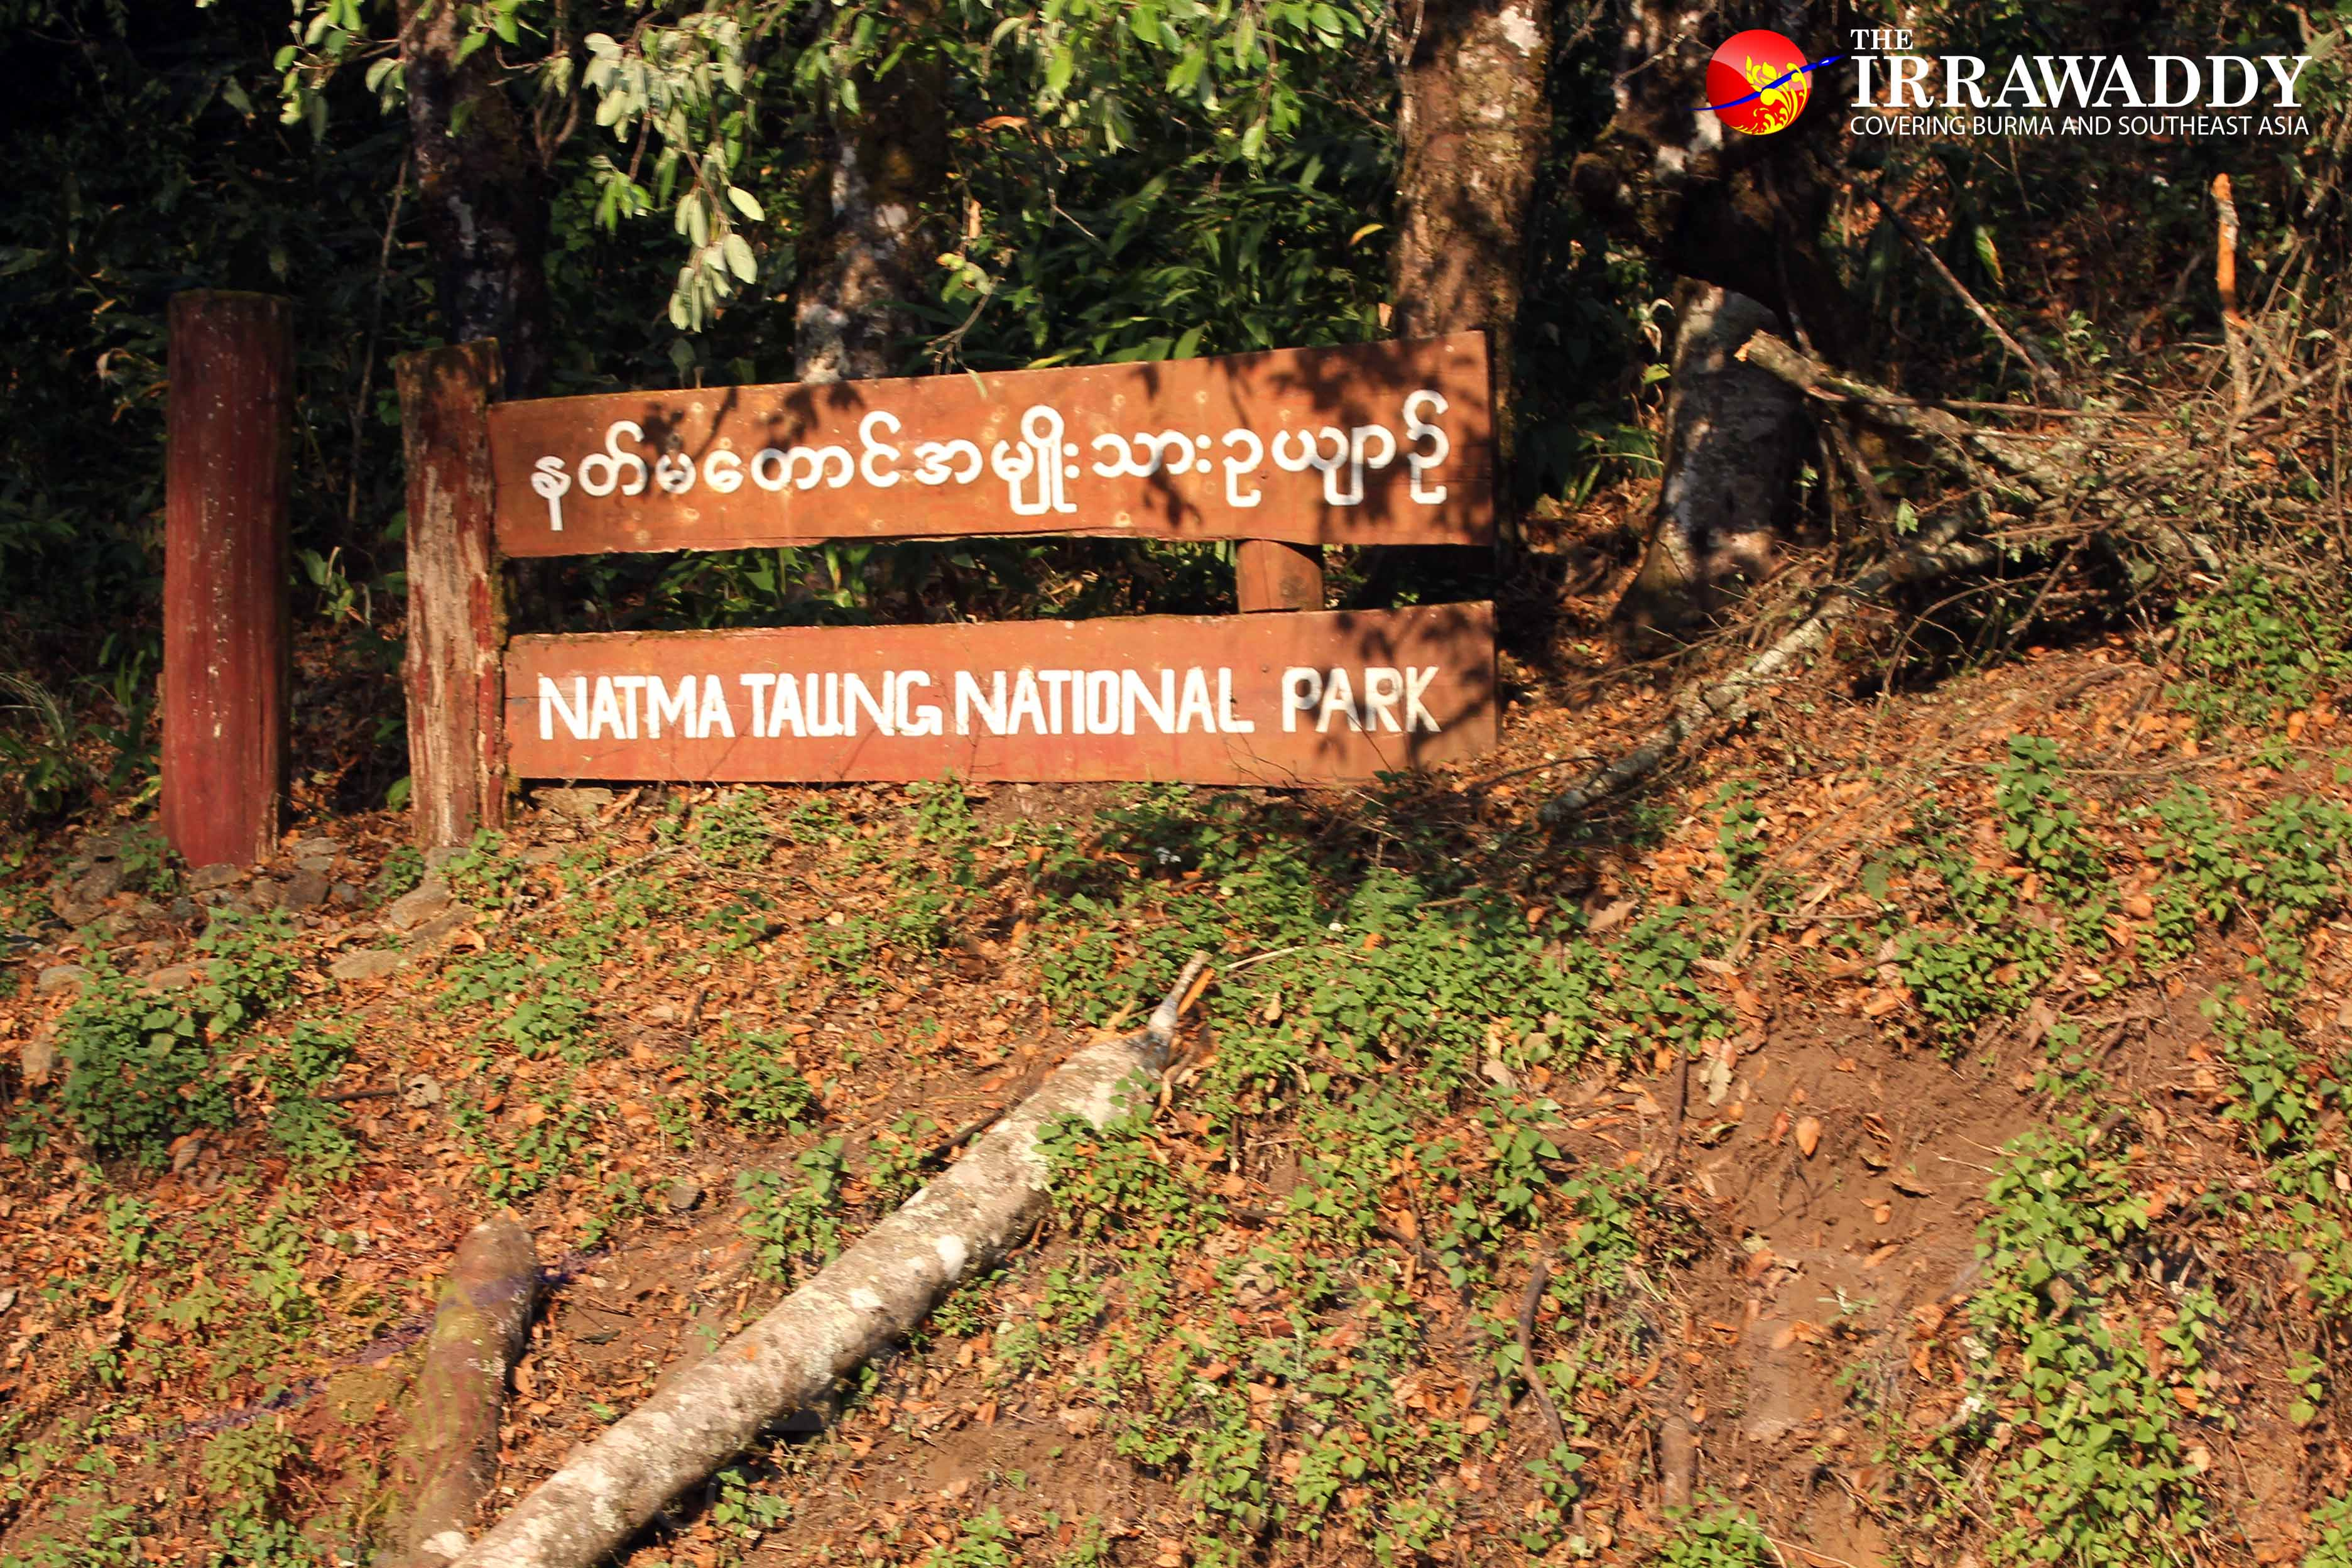 A sign welcomes visitors to the Natma Taung National Park in Chin State. (Photo: JPaing / The Irrawaddy)